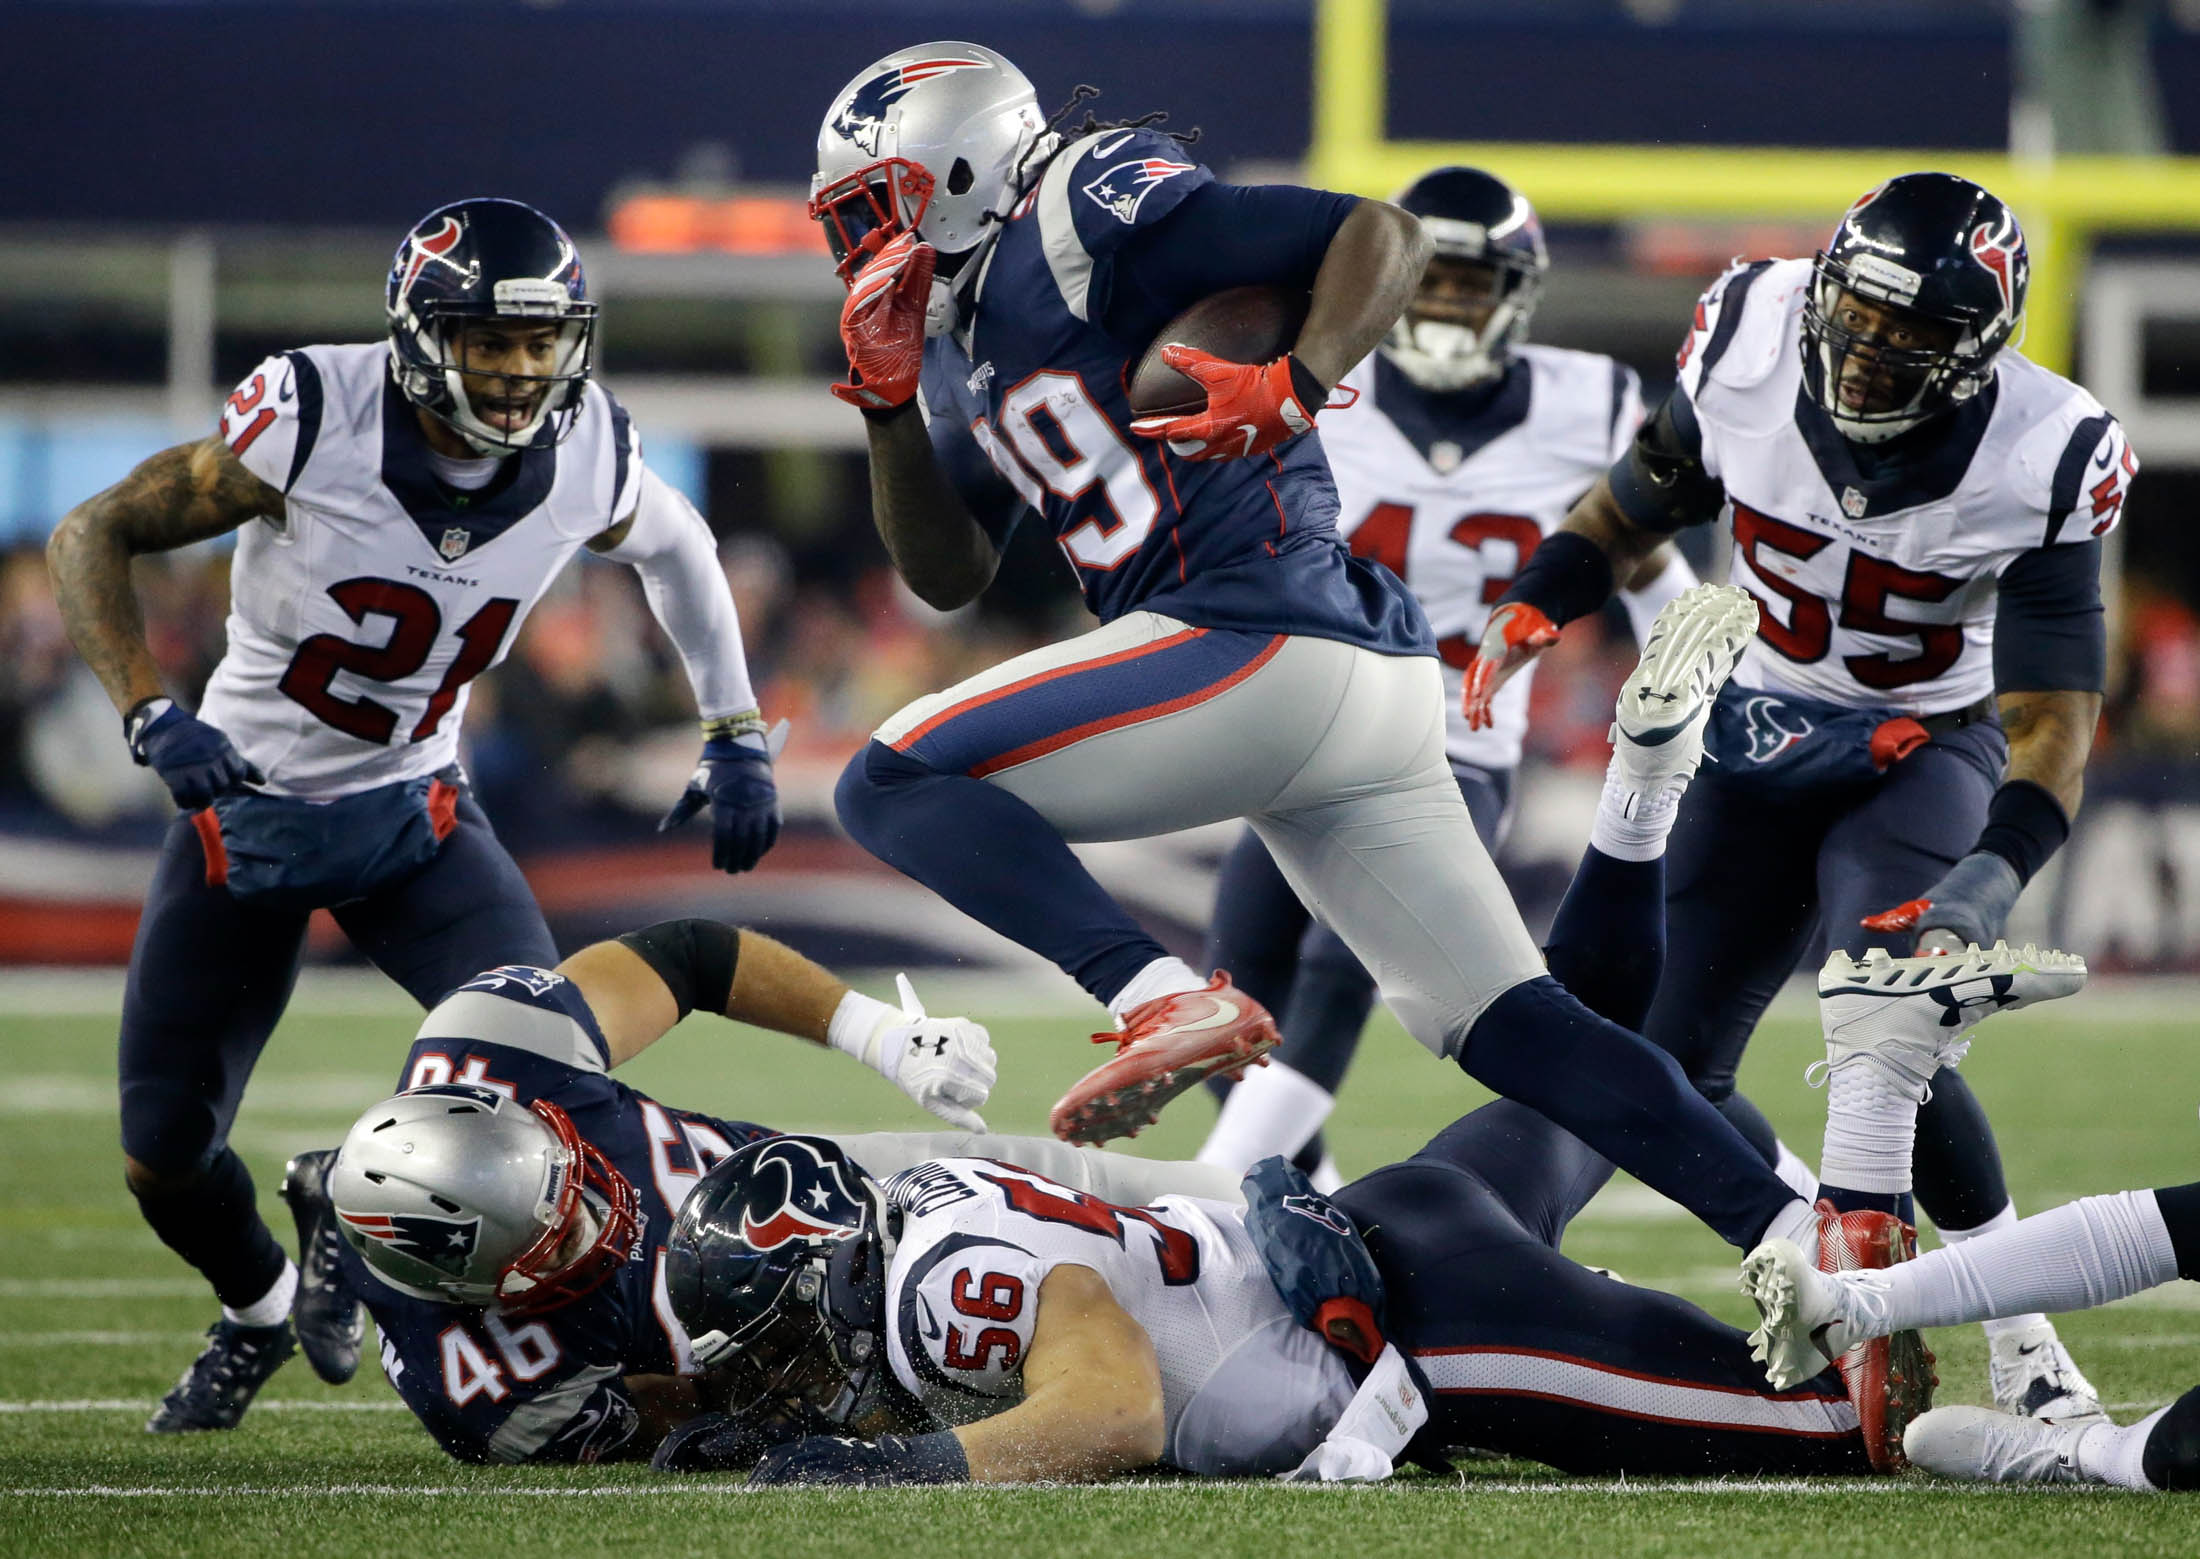 New England Patriots running back LeGarrette Blount (29) gains yardage as Houston Texans defenders A.J. Bouye (21) and Benardrick McKinney (55) pursue during the second half of an NFL divisional playoff football game, Saturday, Jan. 14, 2017, in Foxborough, Mass. (Elise Amendola/AP)